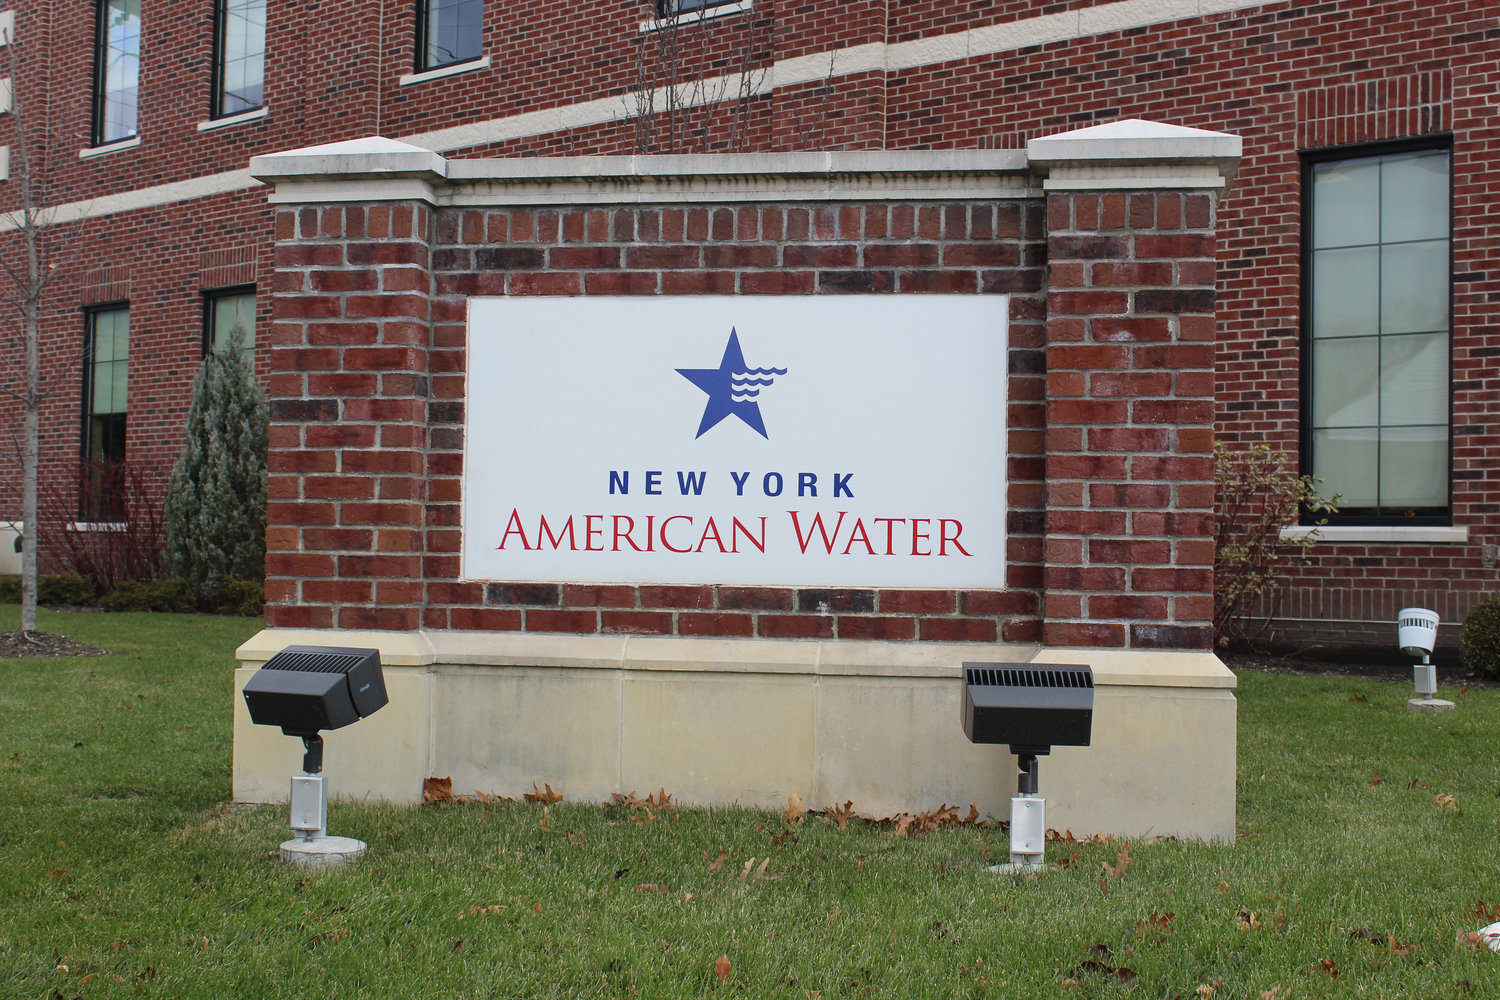 New York American Water's corporate office in Merrick.